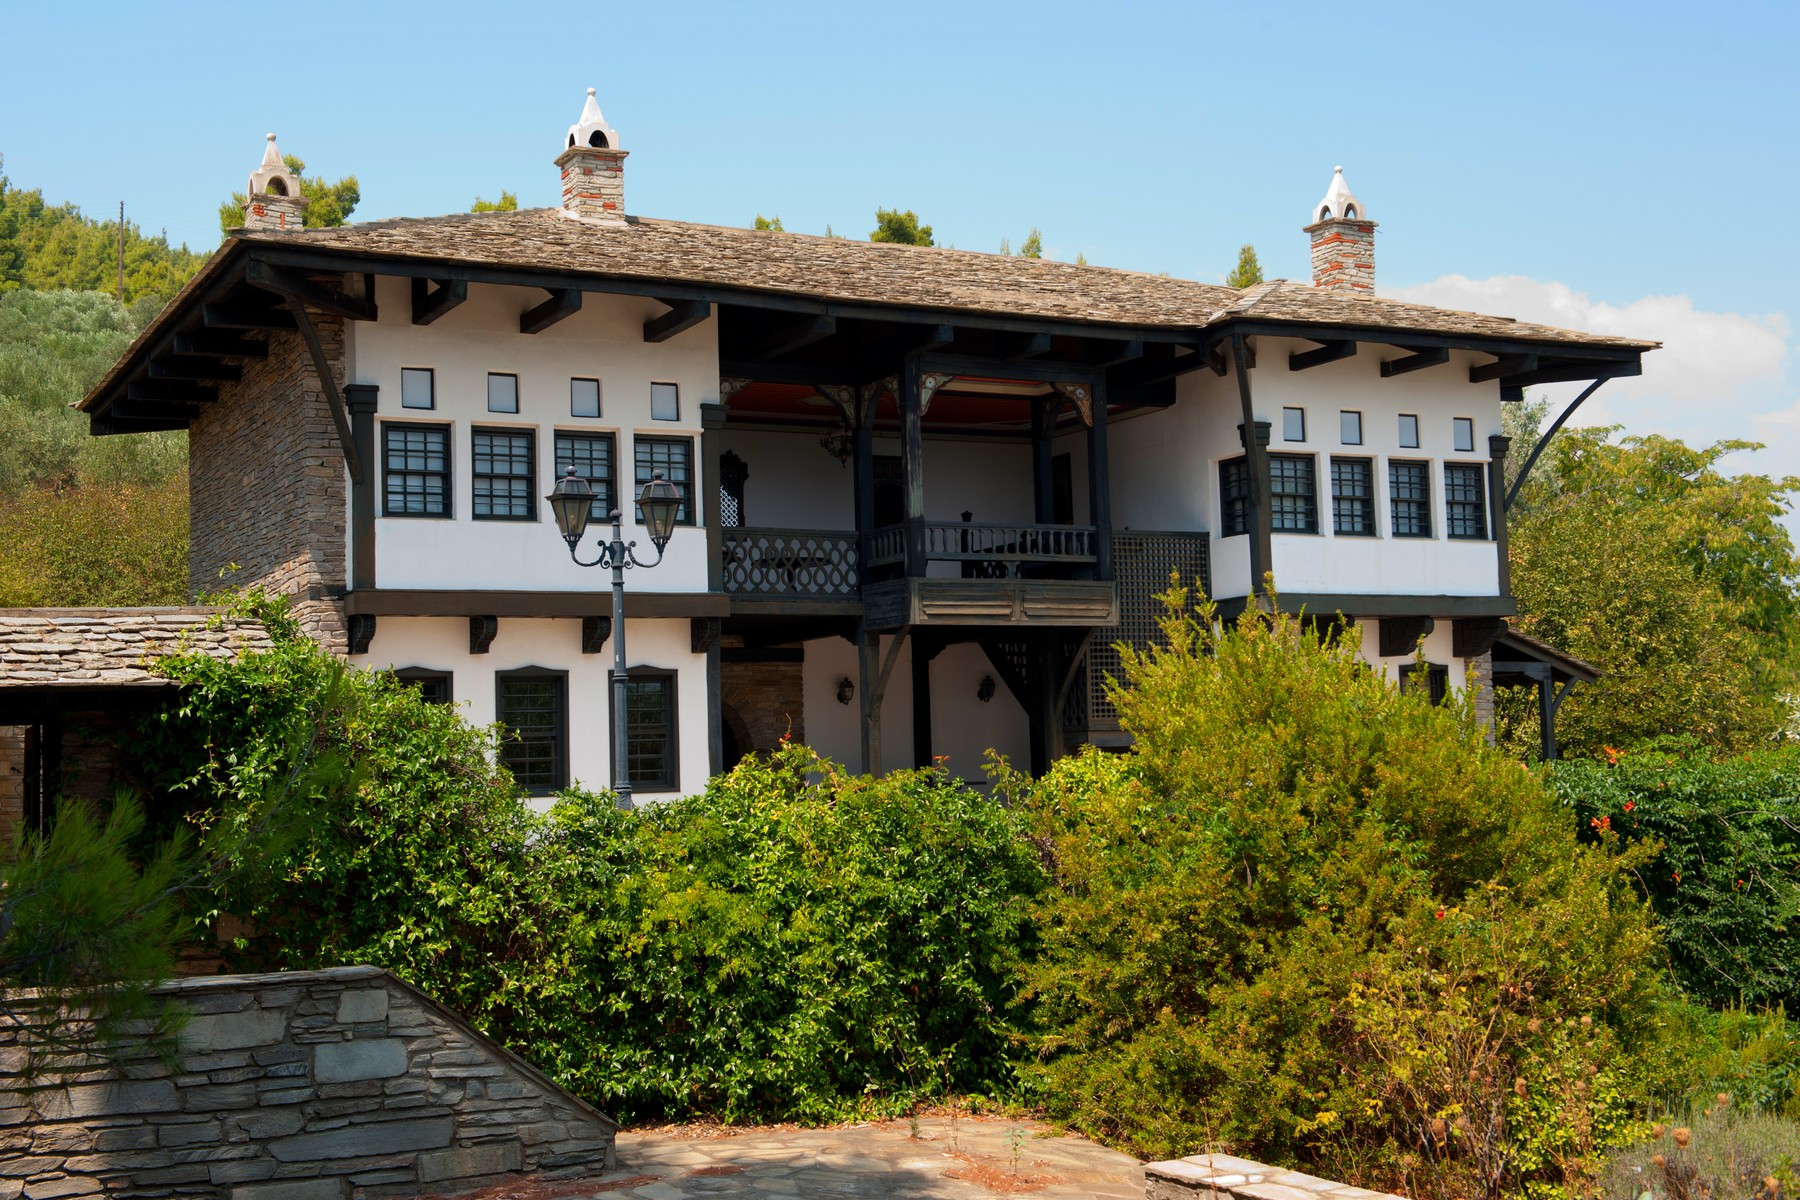 Single Family Home for Sale at Traditional Villa in Chalkidiki Other Greece, Other Areas In Greece, Greece